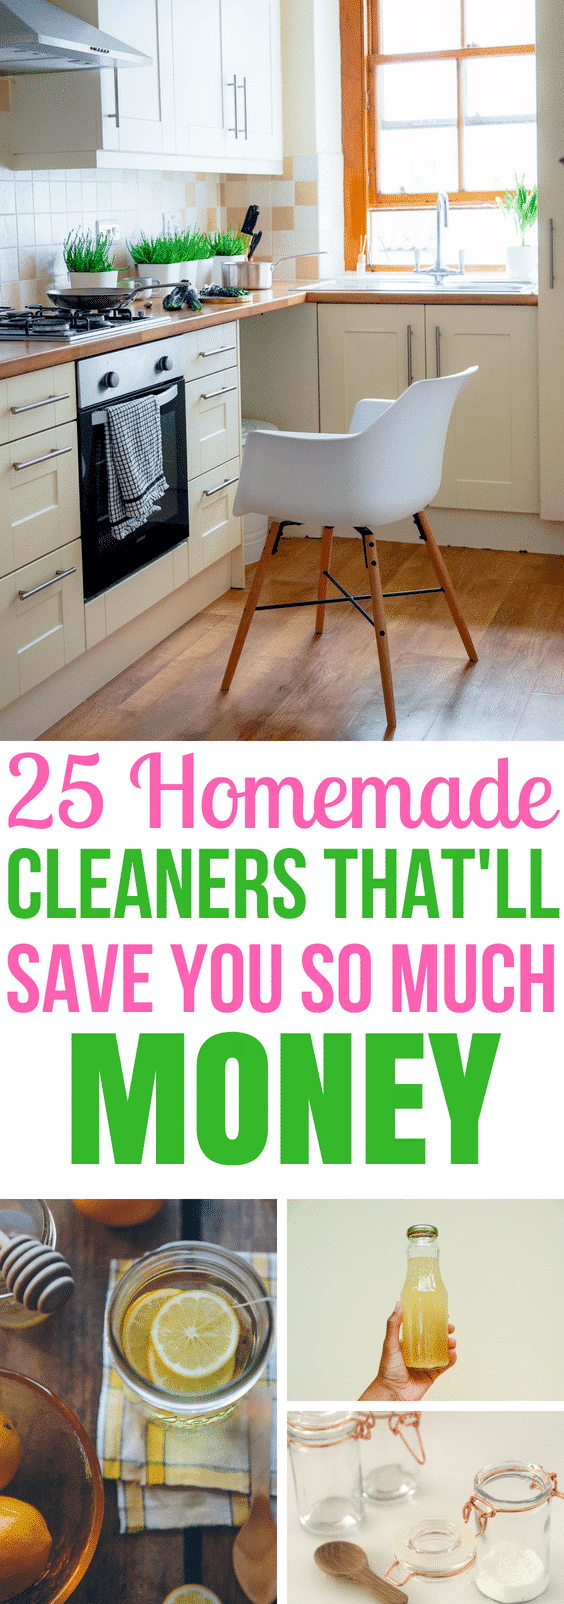 These homemade cleaners are AMAZING! I'm so glad I found these really great home hacks! Now I can make these for pennies and save tons of money on household cleaners! #DIY #cleaning #homehacks #frugalliving #cleaninghacks #cleaningtips #diyprojects #cleaningguide